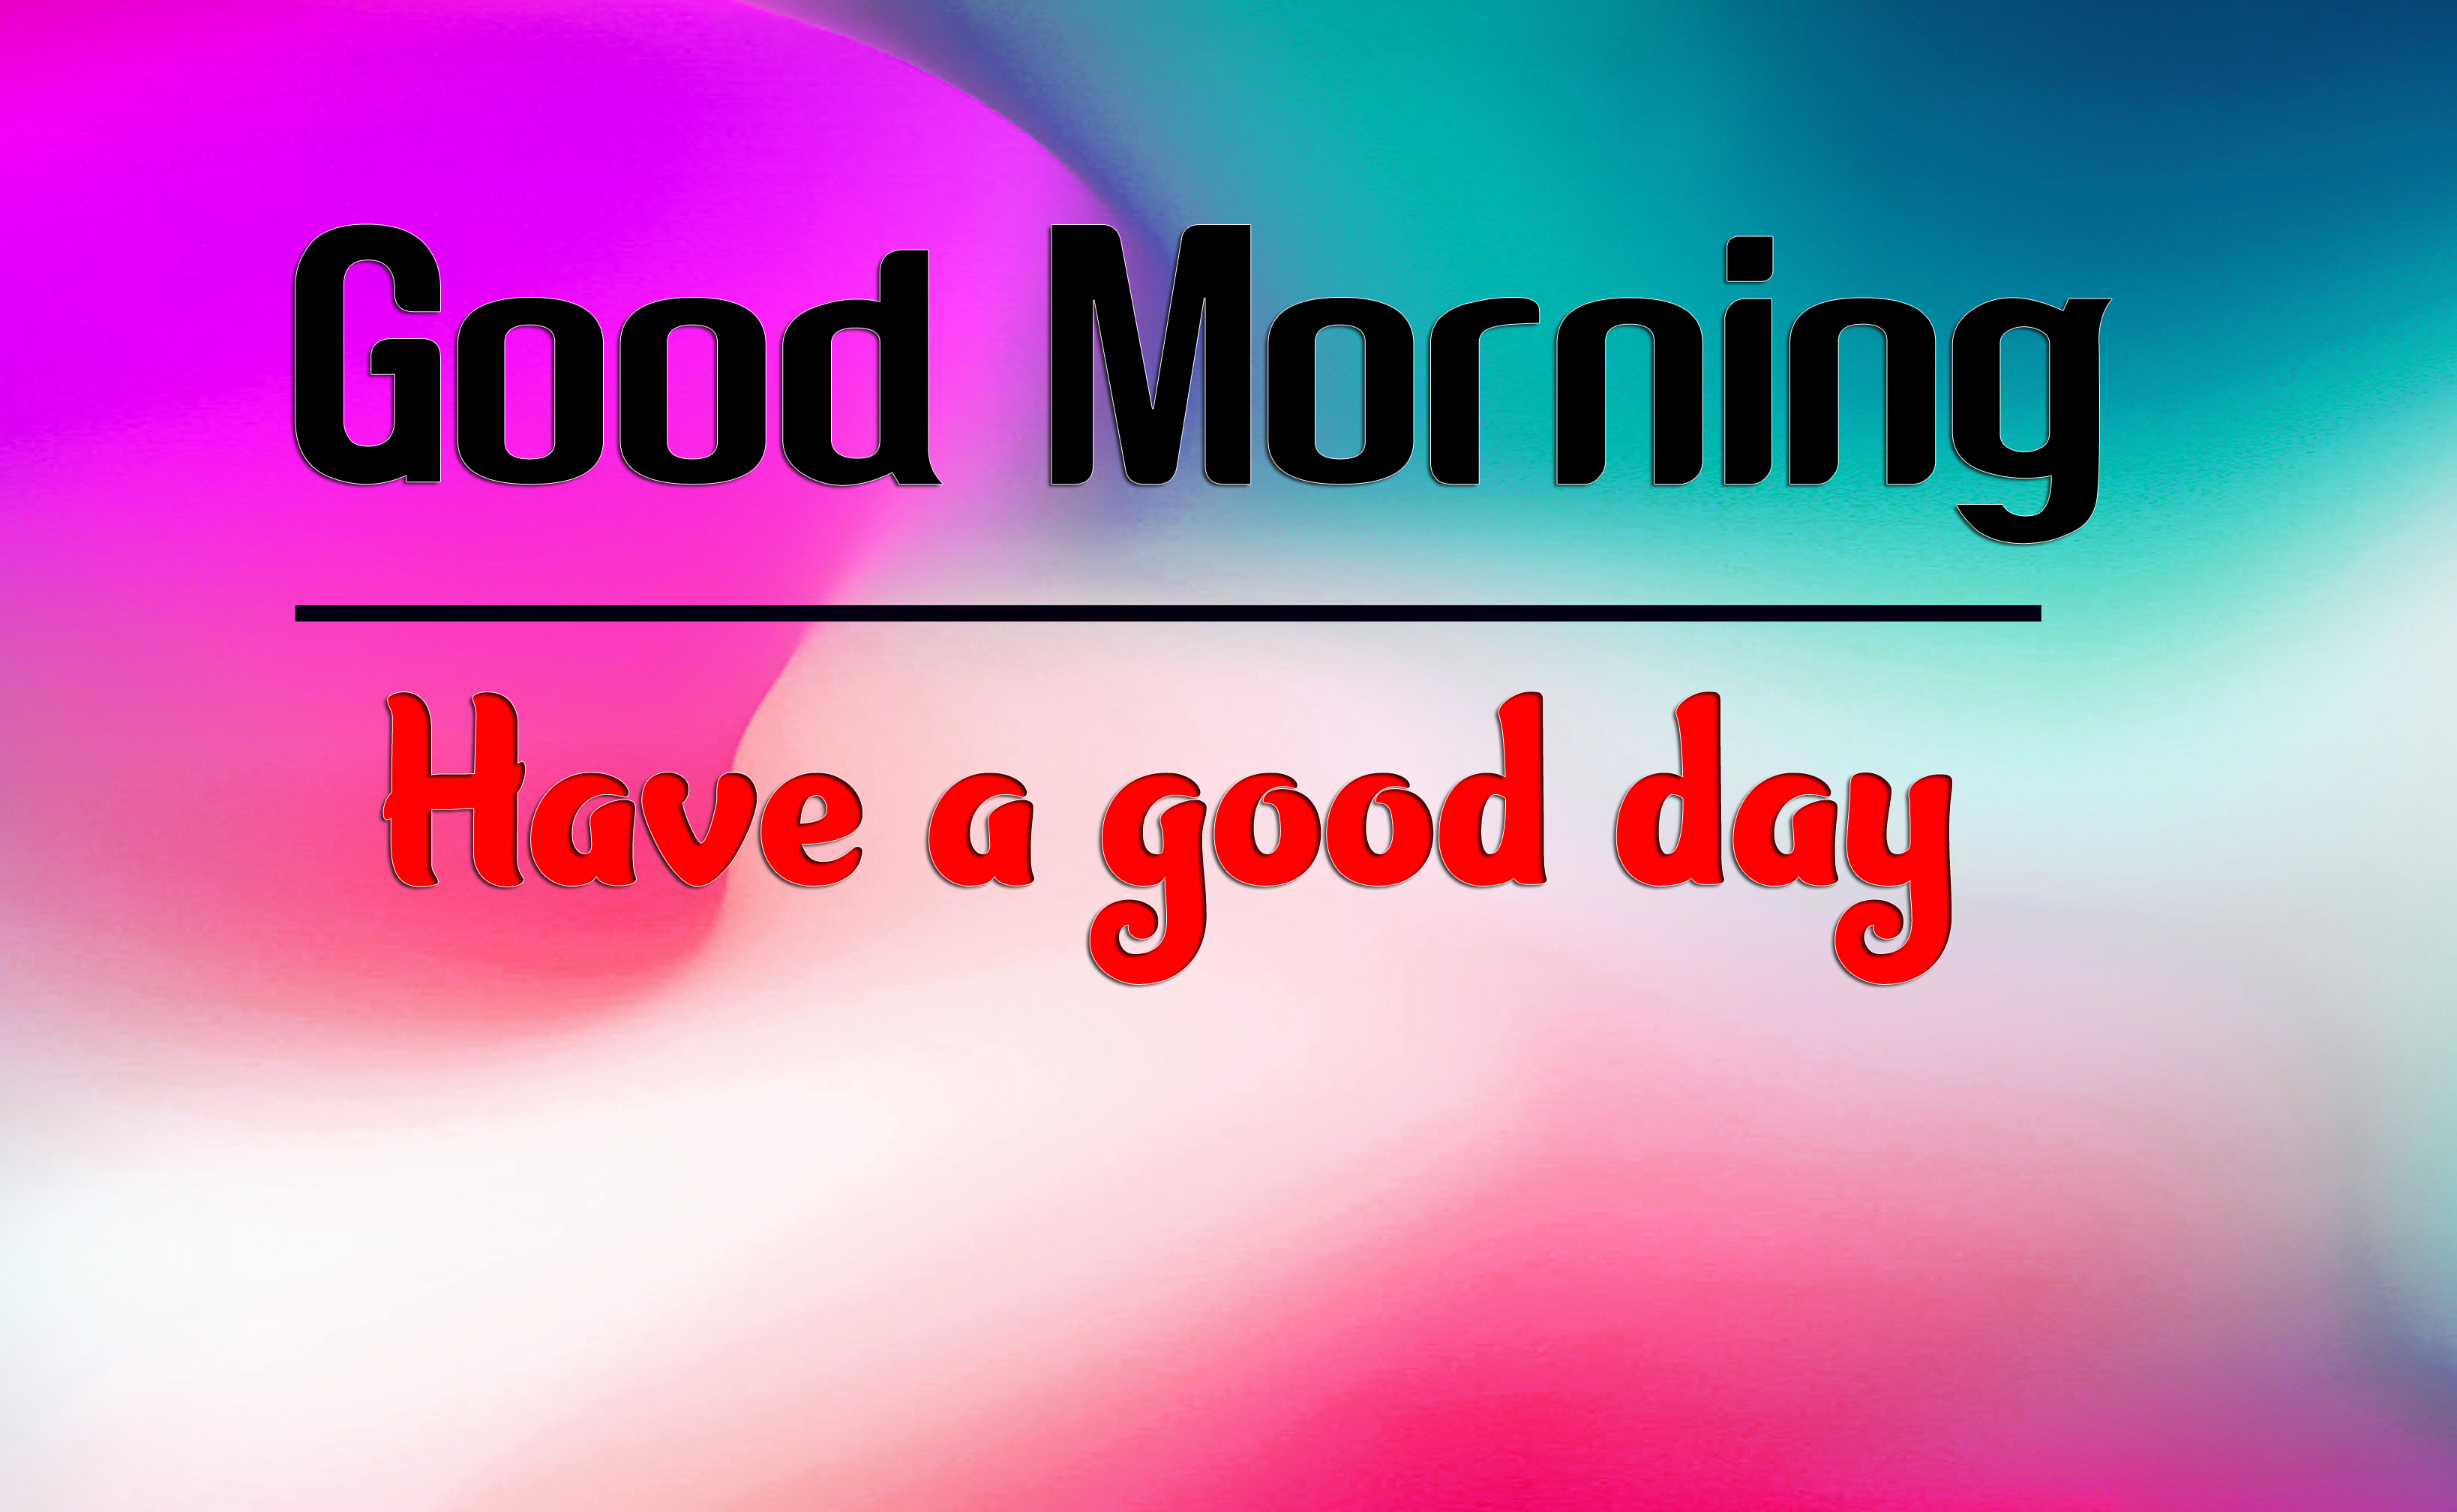 Good Morning 4k HD Images HD Pics Pictures Free Download